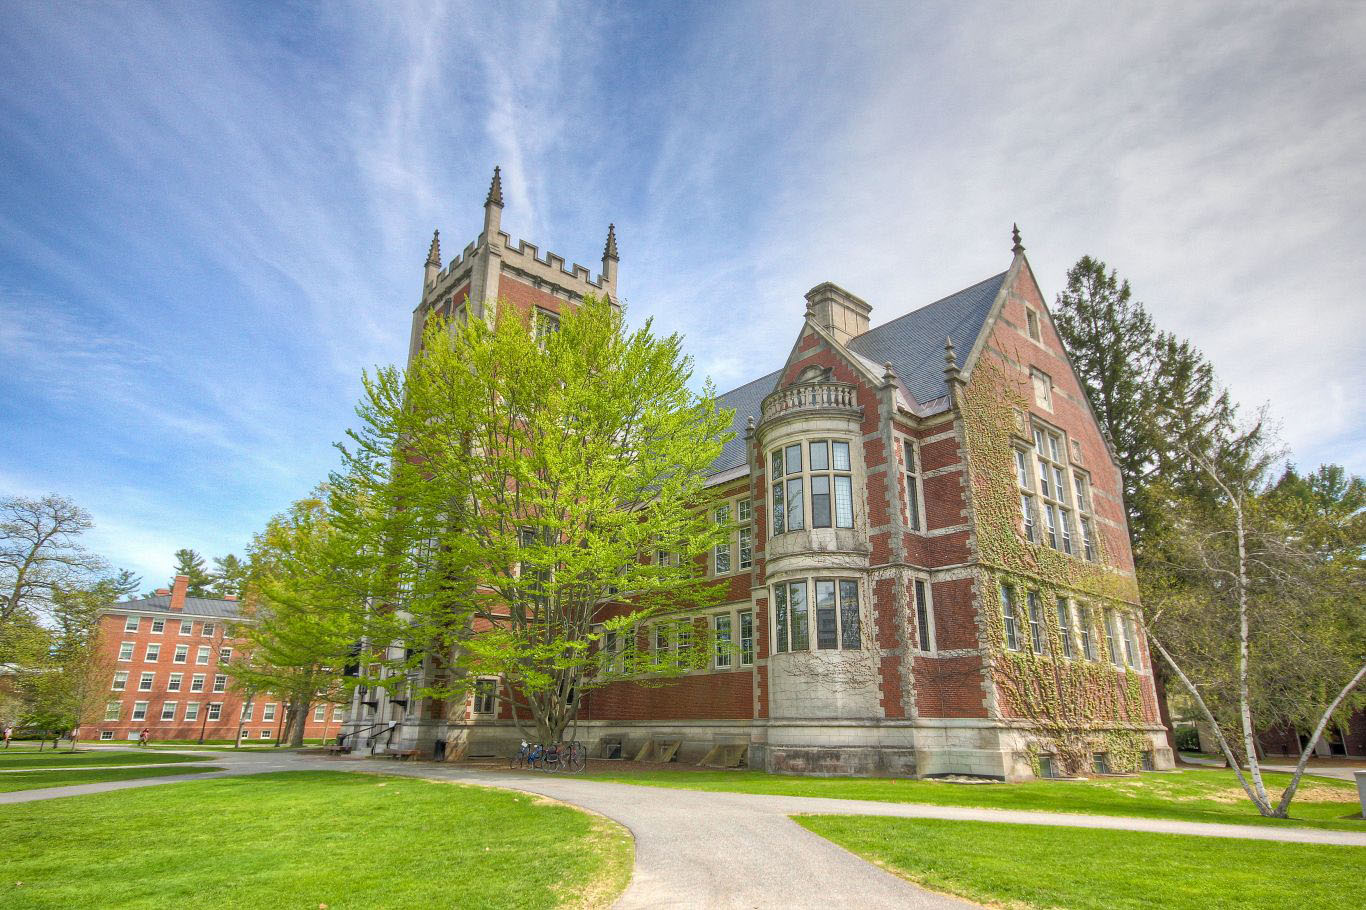 Checkout this video of Bowdoin College